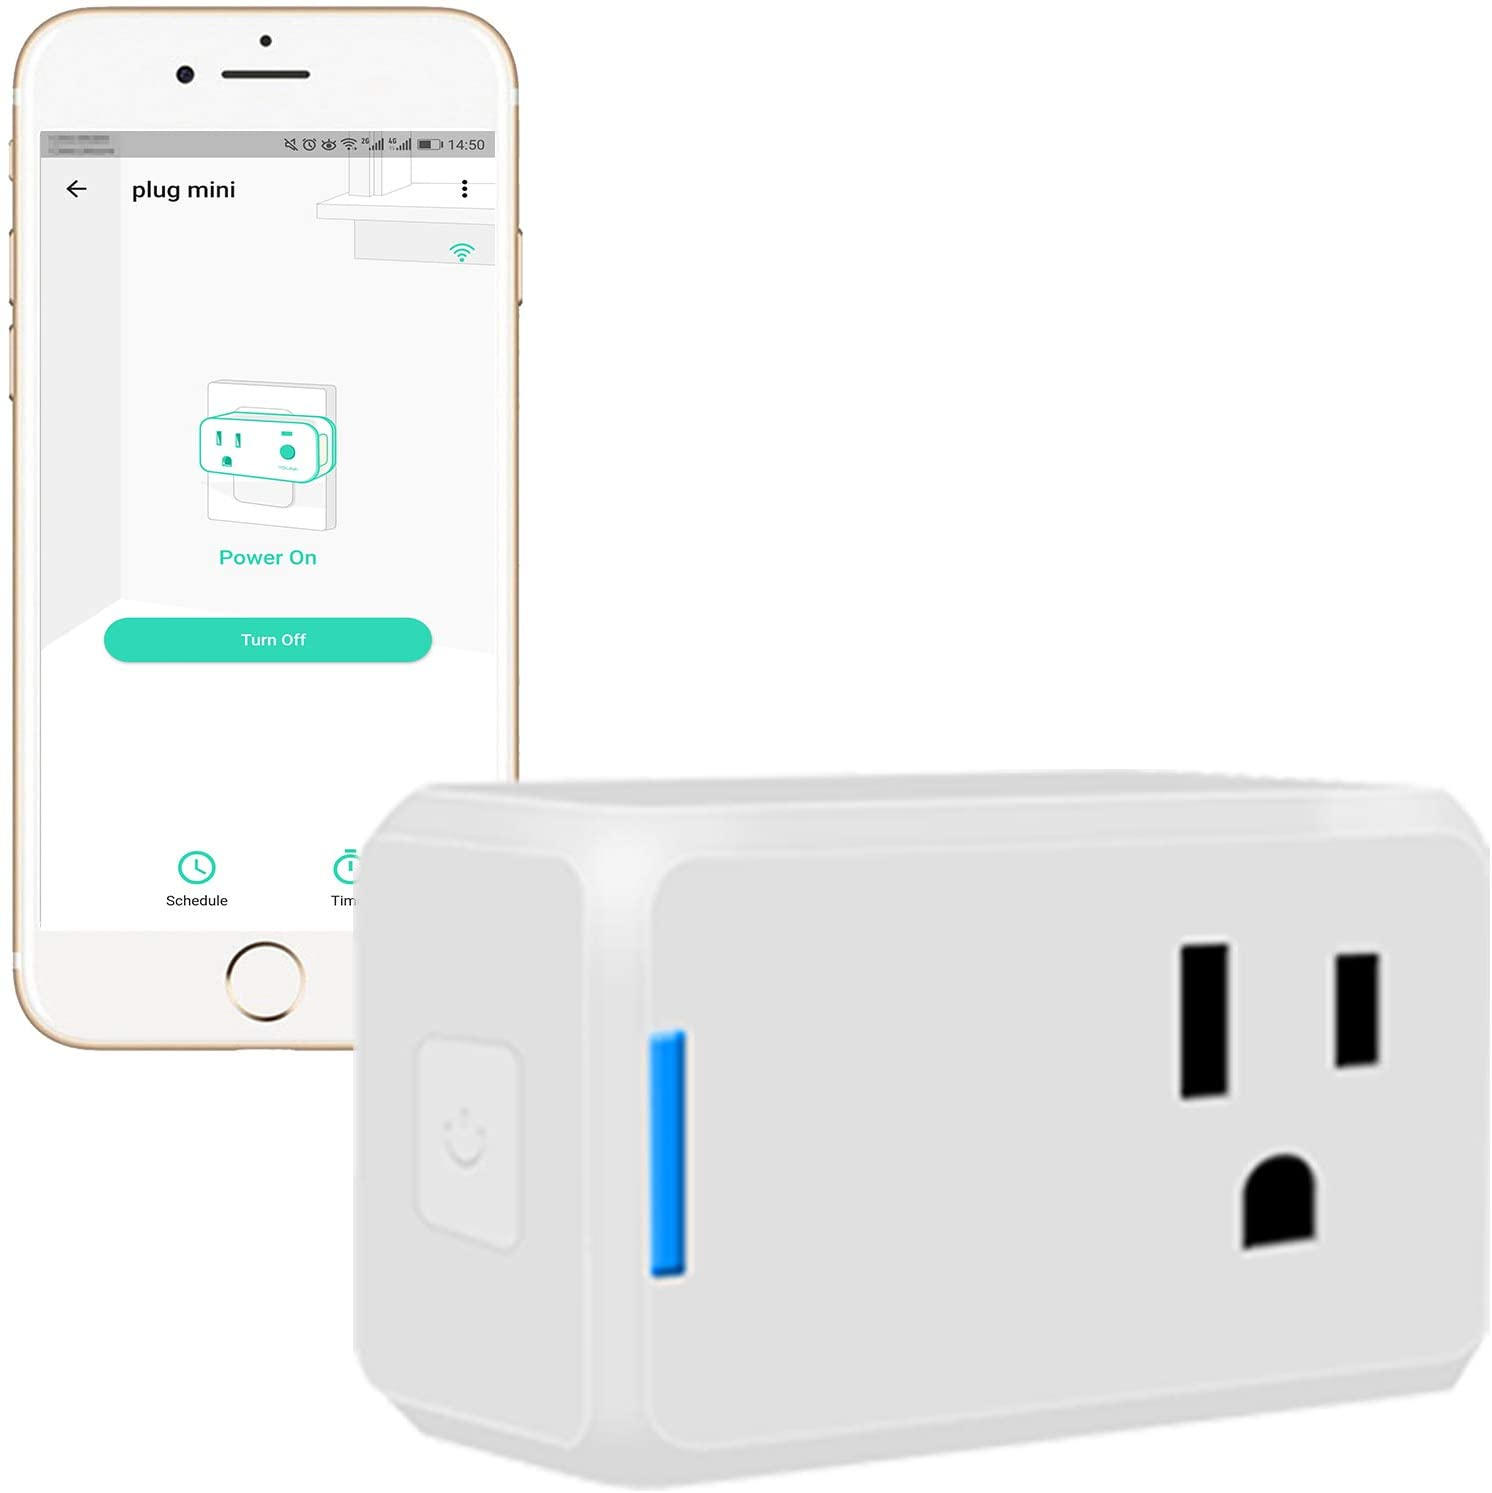 YoLink Mini Plug, 1/4 Mile World's Longest Range Smart Home Plug Mini Outlet Work with Alexa Google Assistant IFTTT APP Remote Control Home Appliances from Anywhere ETL Certified - YoLink Hub Required